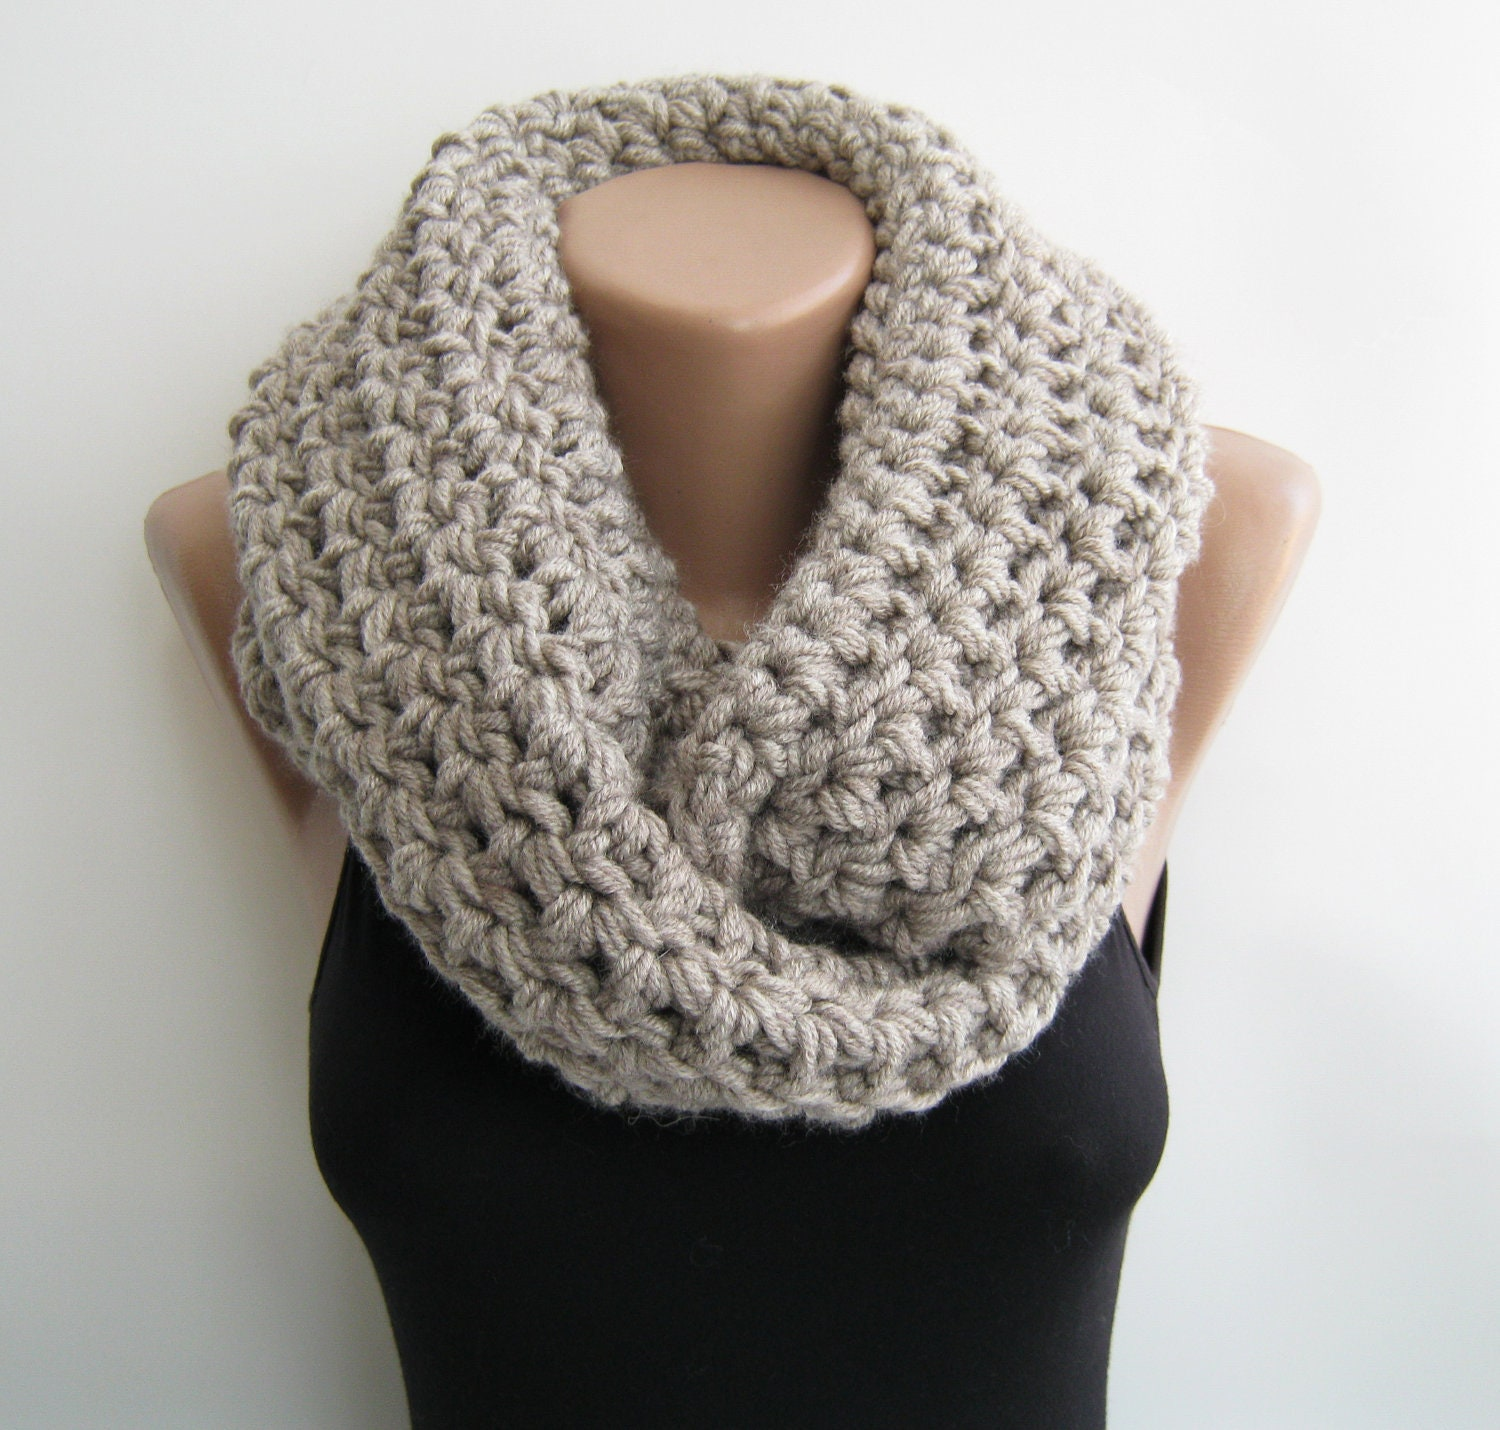 Crochet Infinity Scarf : Crochet infinity scarf oat meal chunky circle by sascarves on Etsy